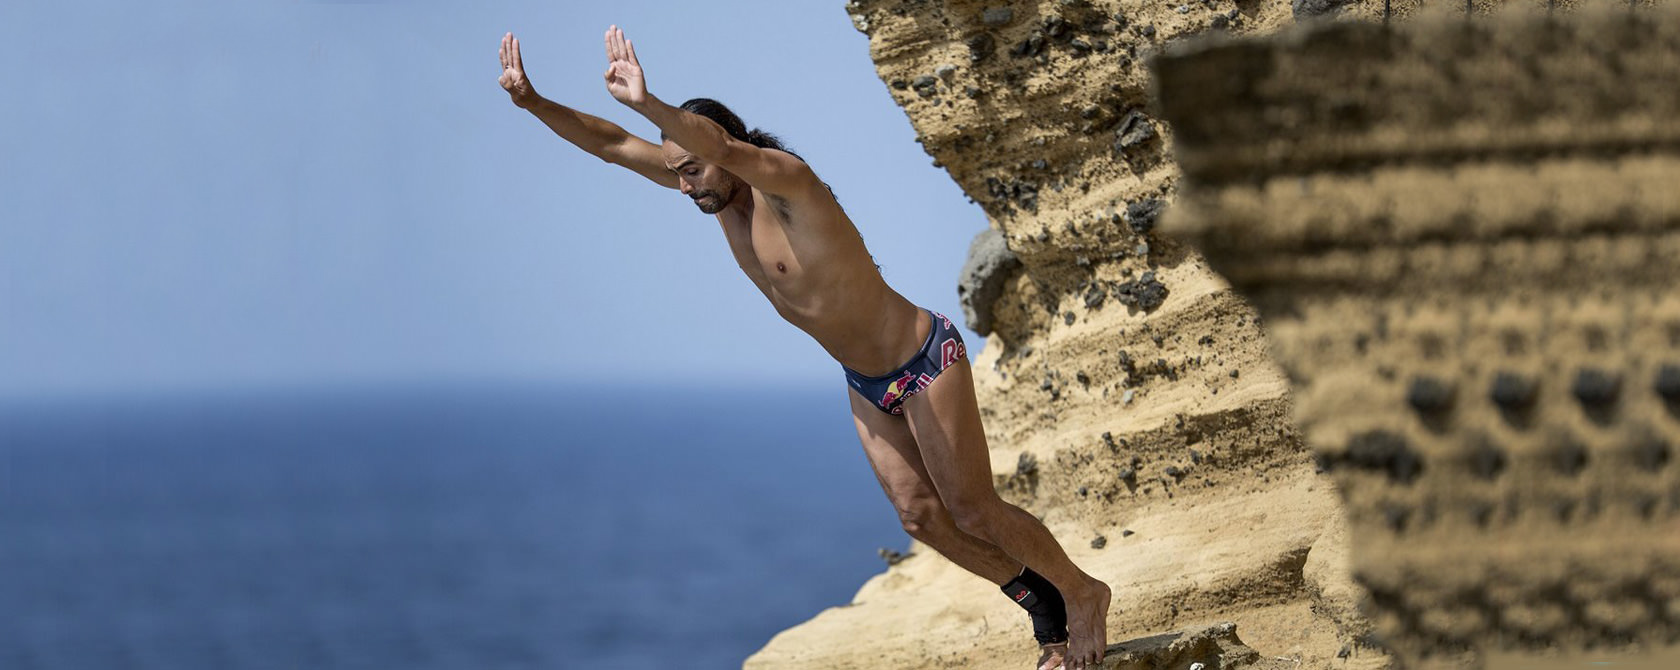 Orlando Duque – World Champion Cliff Diver